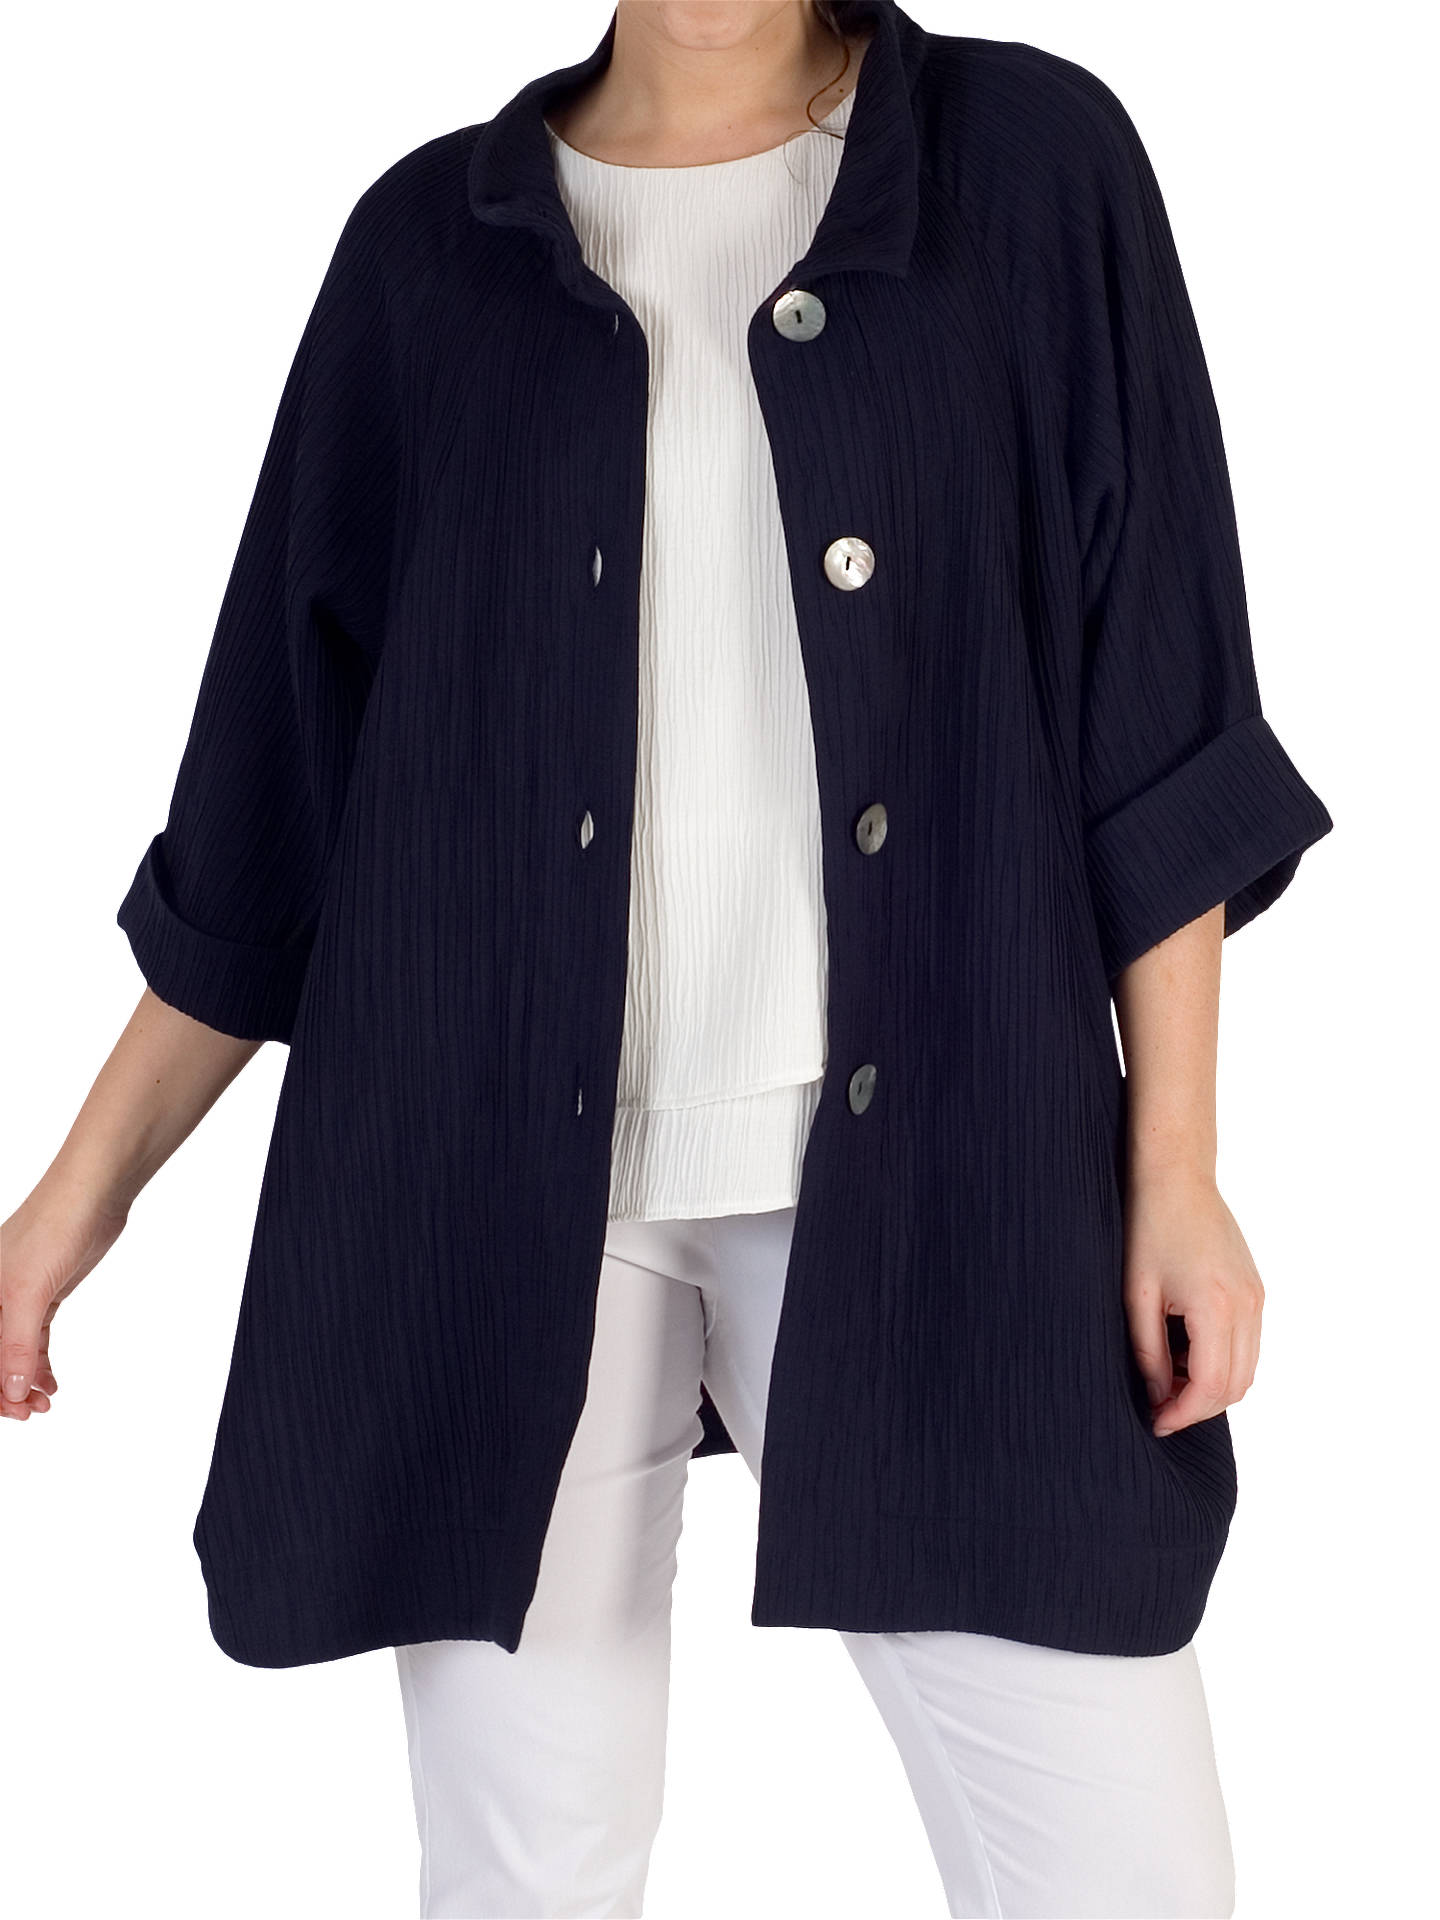 BuyChesca Textured Jacquard Coat, Navy, 12-14 Online at johnlewis.com